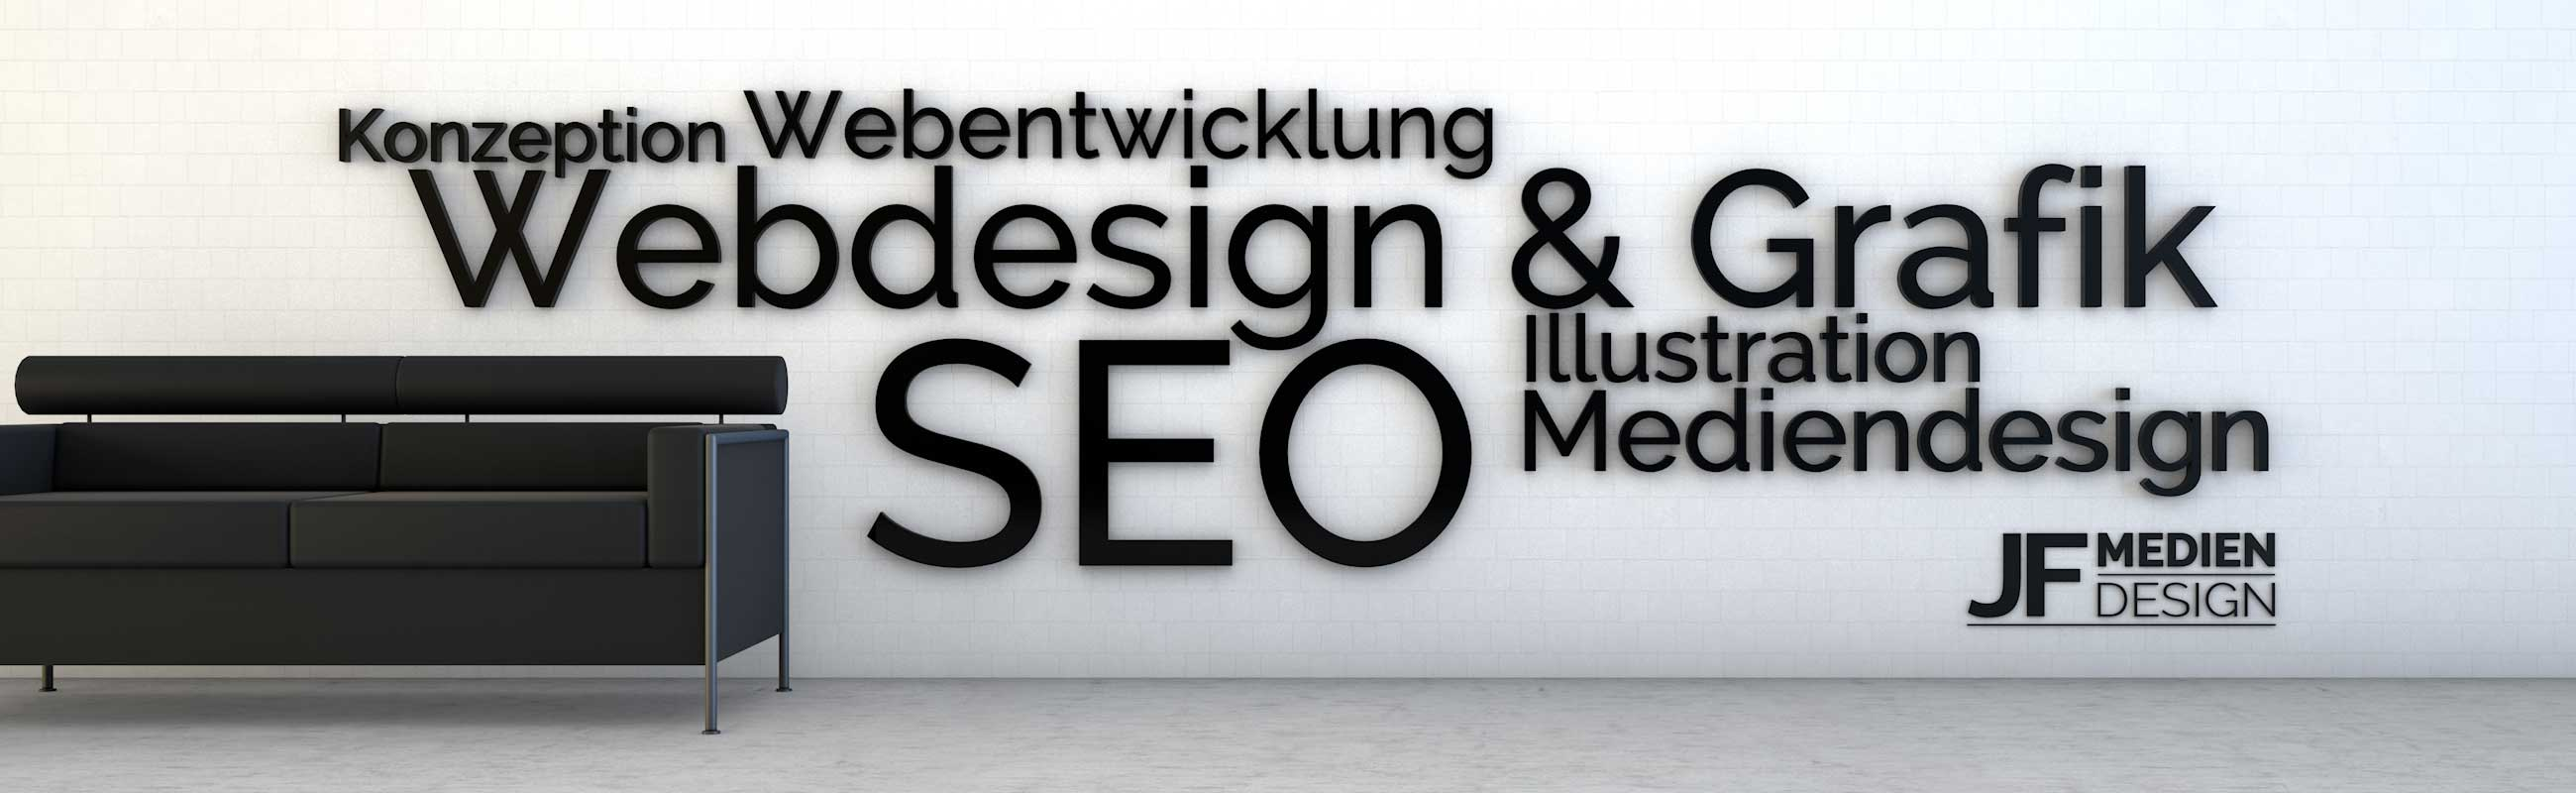 jfmediendesign - WordPress Webdesign, Grafik und Mediendesign